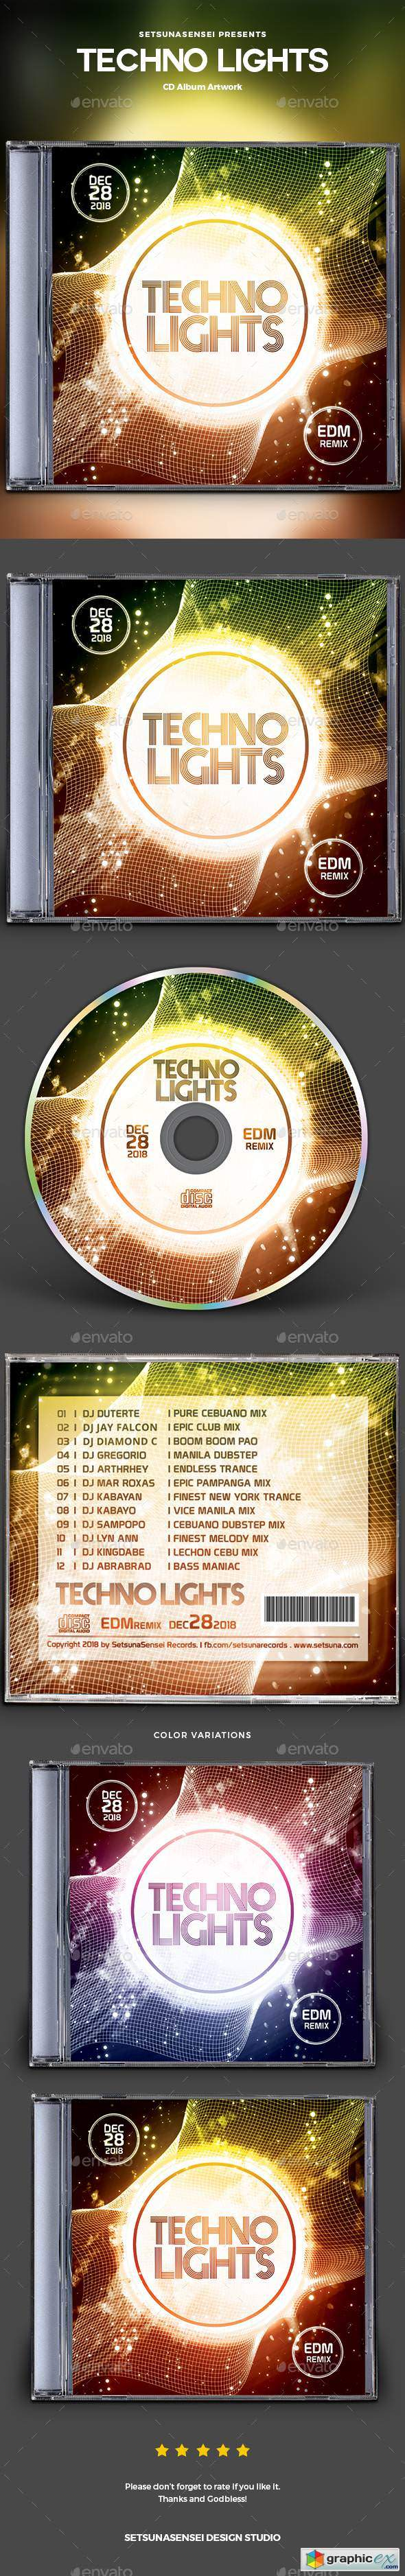 Techno Lights CD Album Artwork